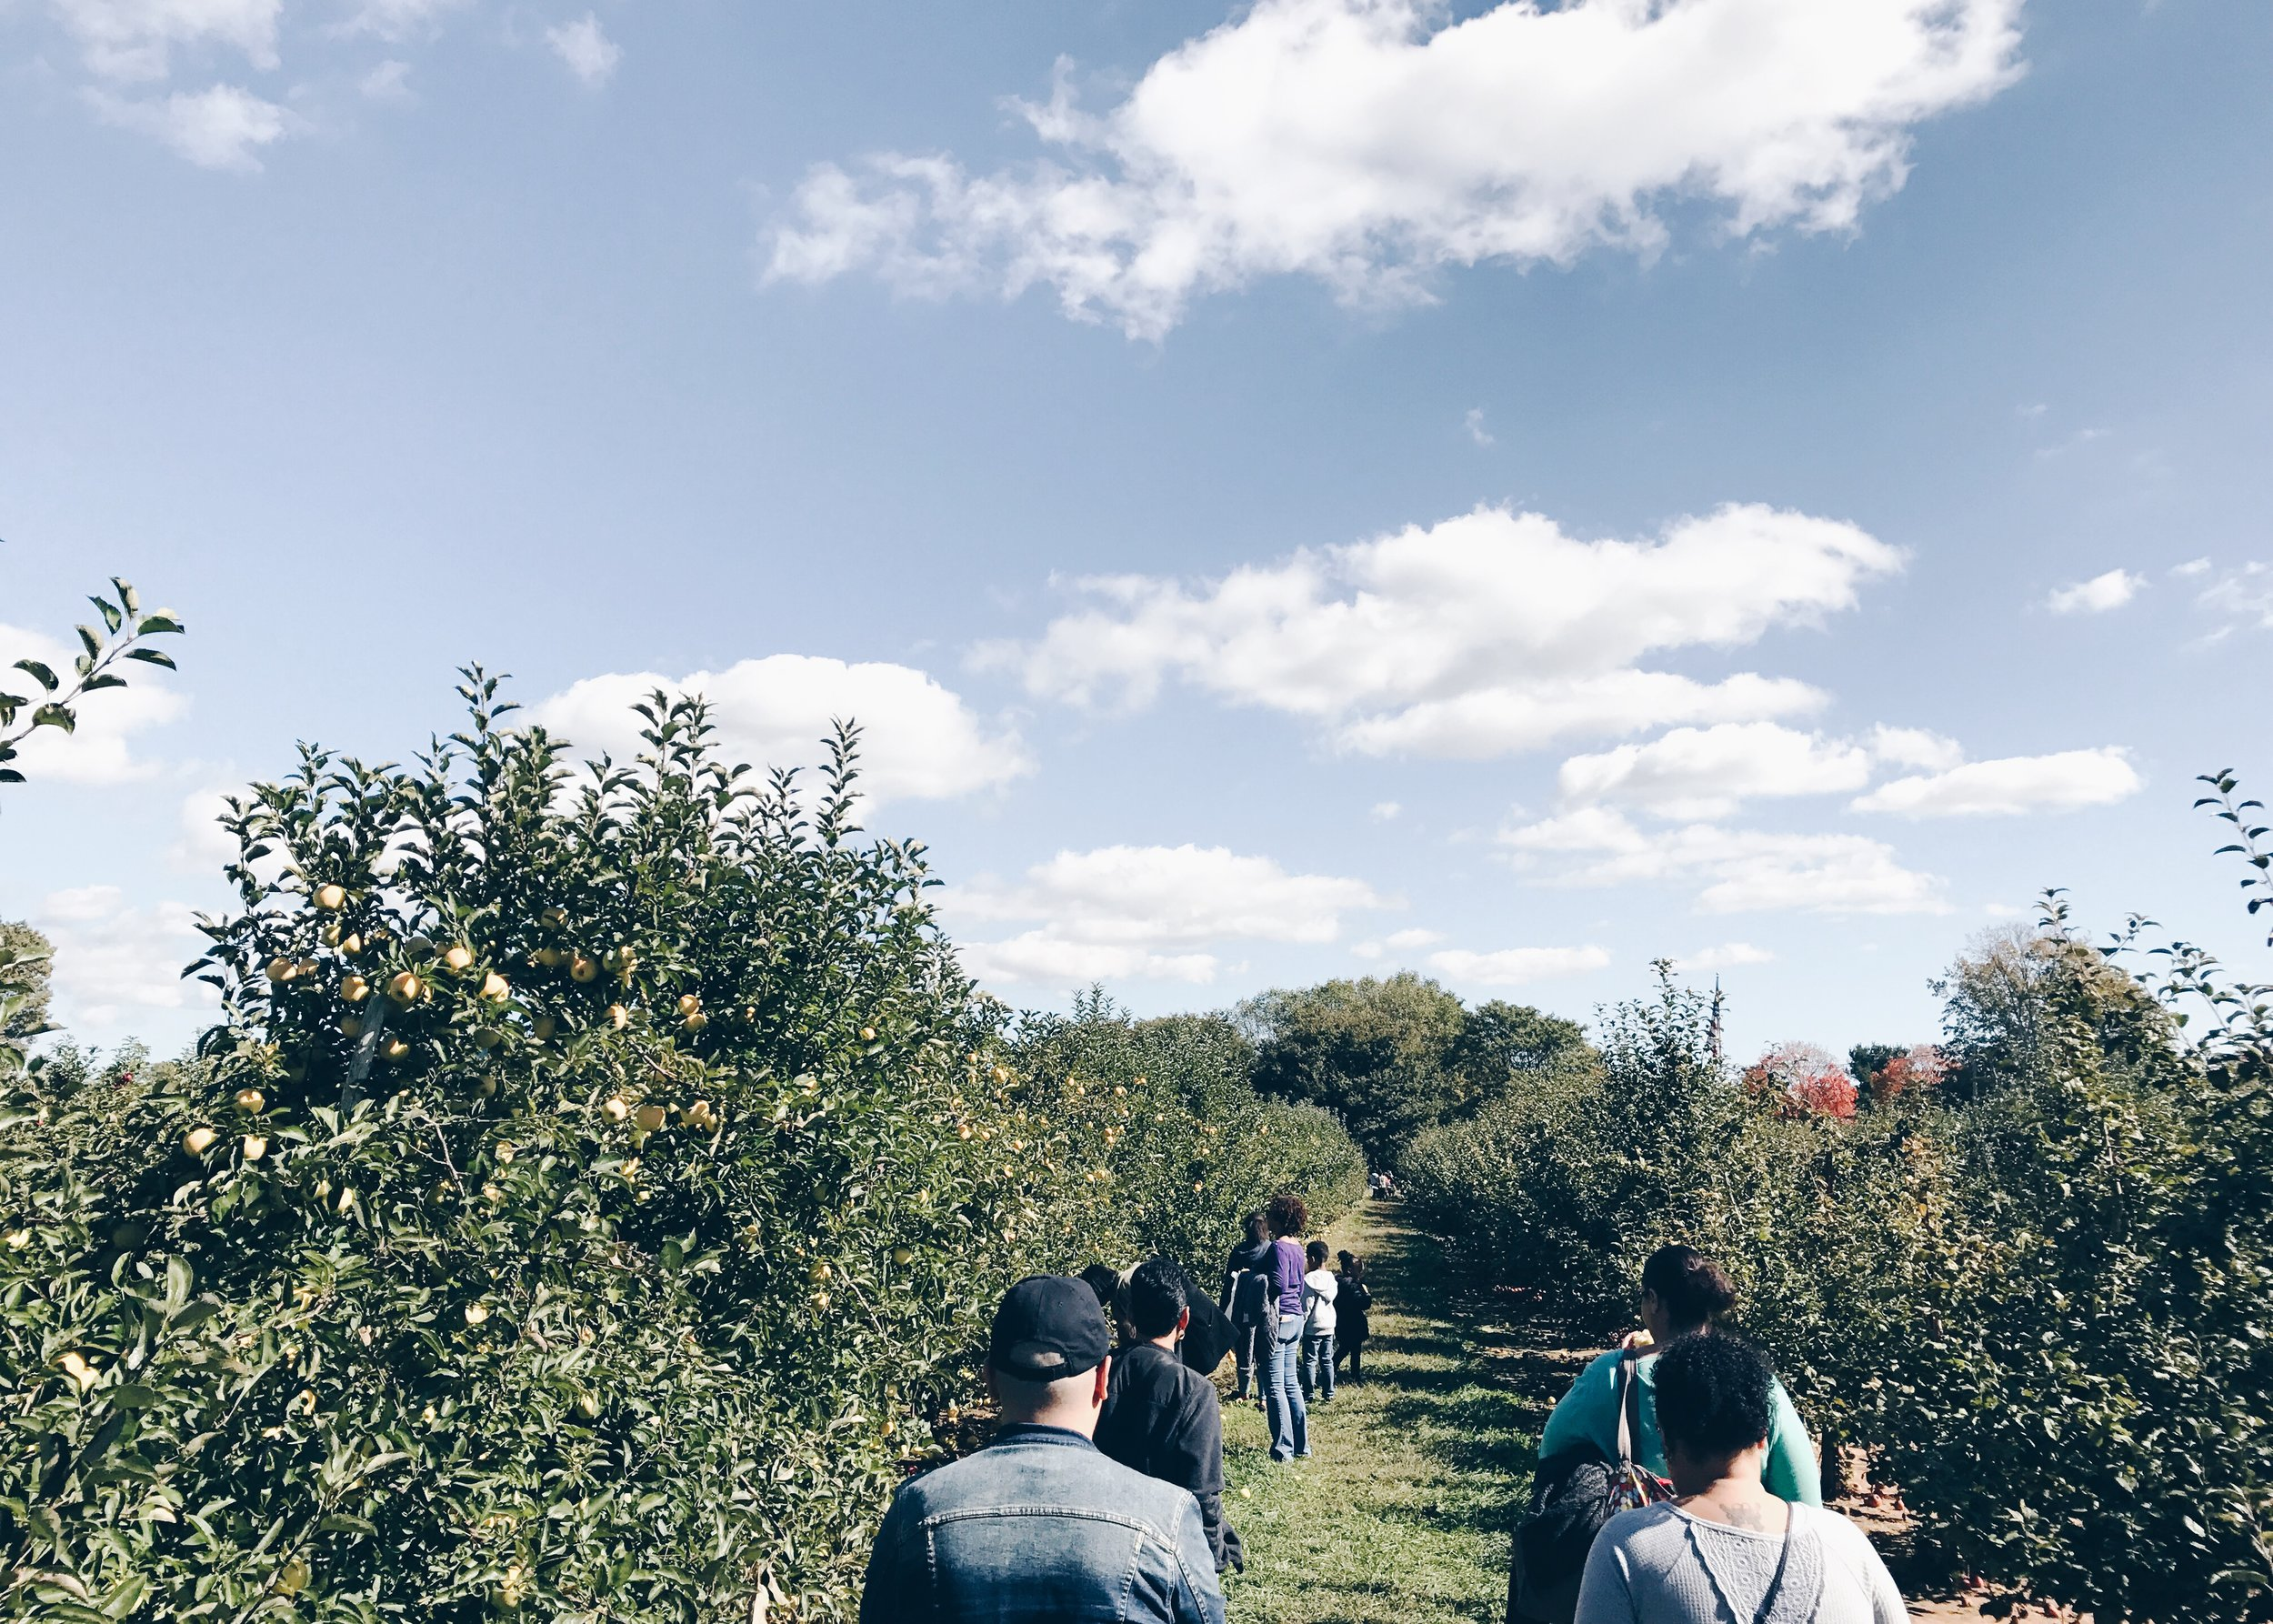 sam-c-perry-apple-and-pumpkin-picking-delicious-orchards-apple-tart-family1.jpg